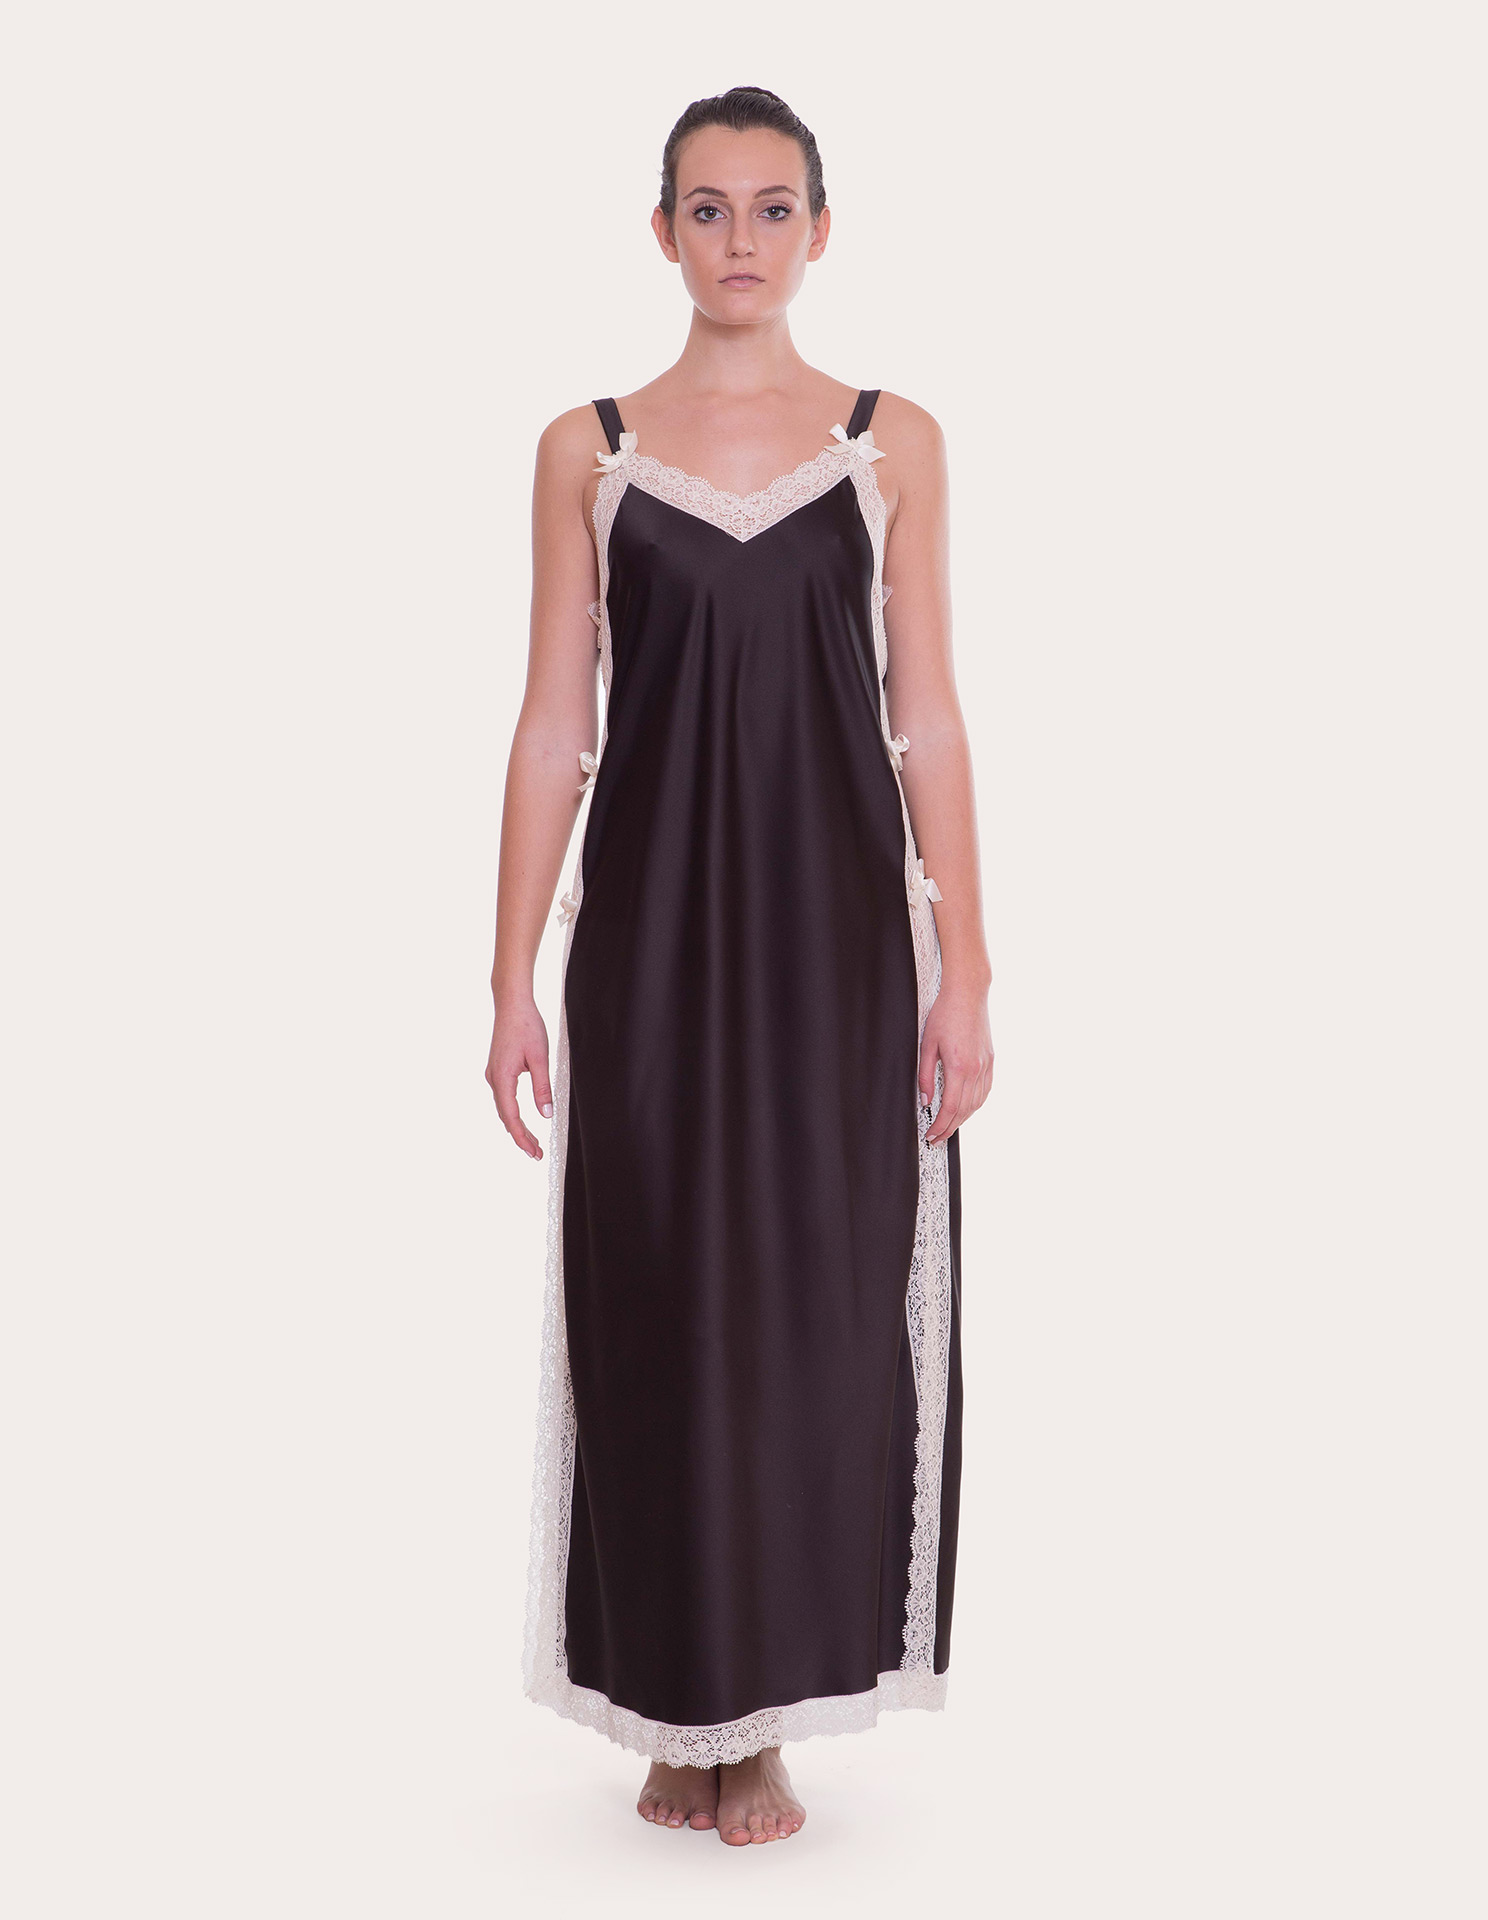 Fiocchi Black Satin Night Gown | Alida Ferrini Firenze